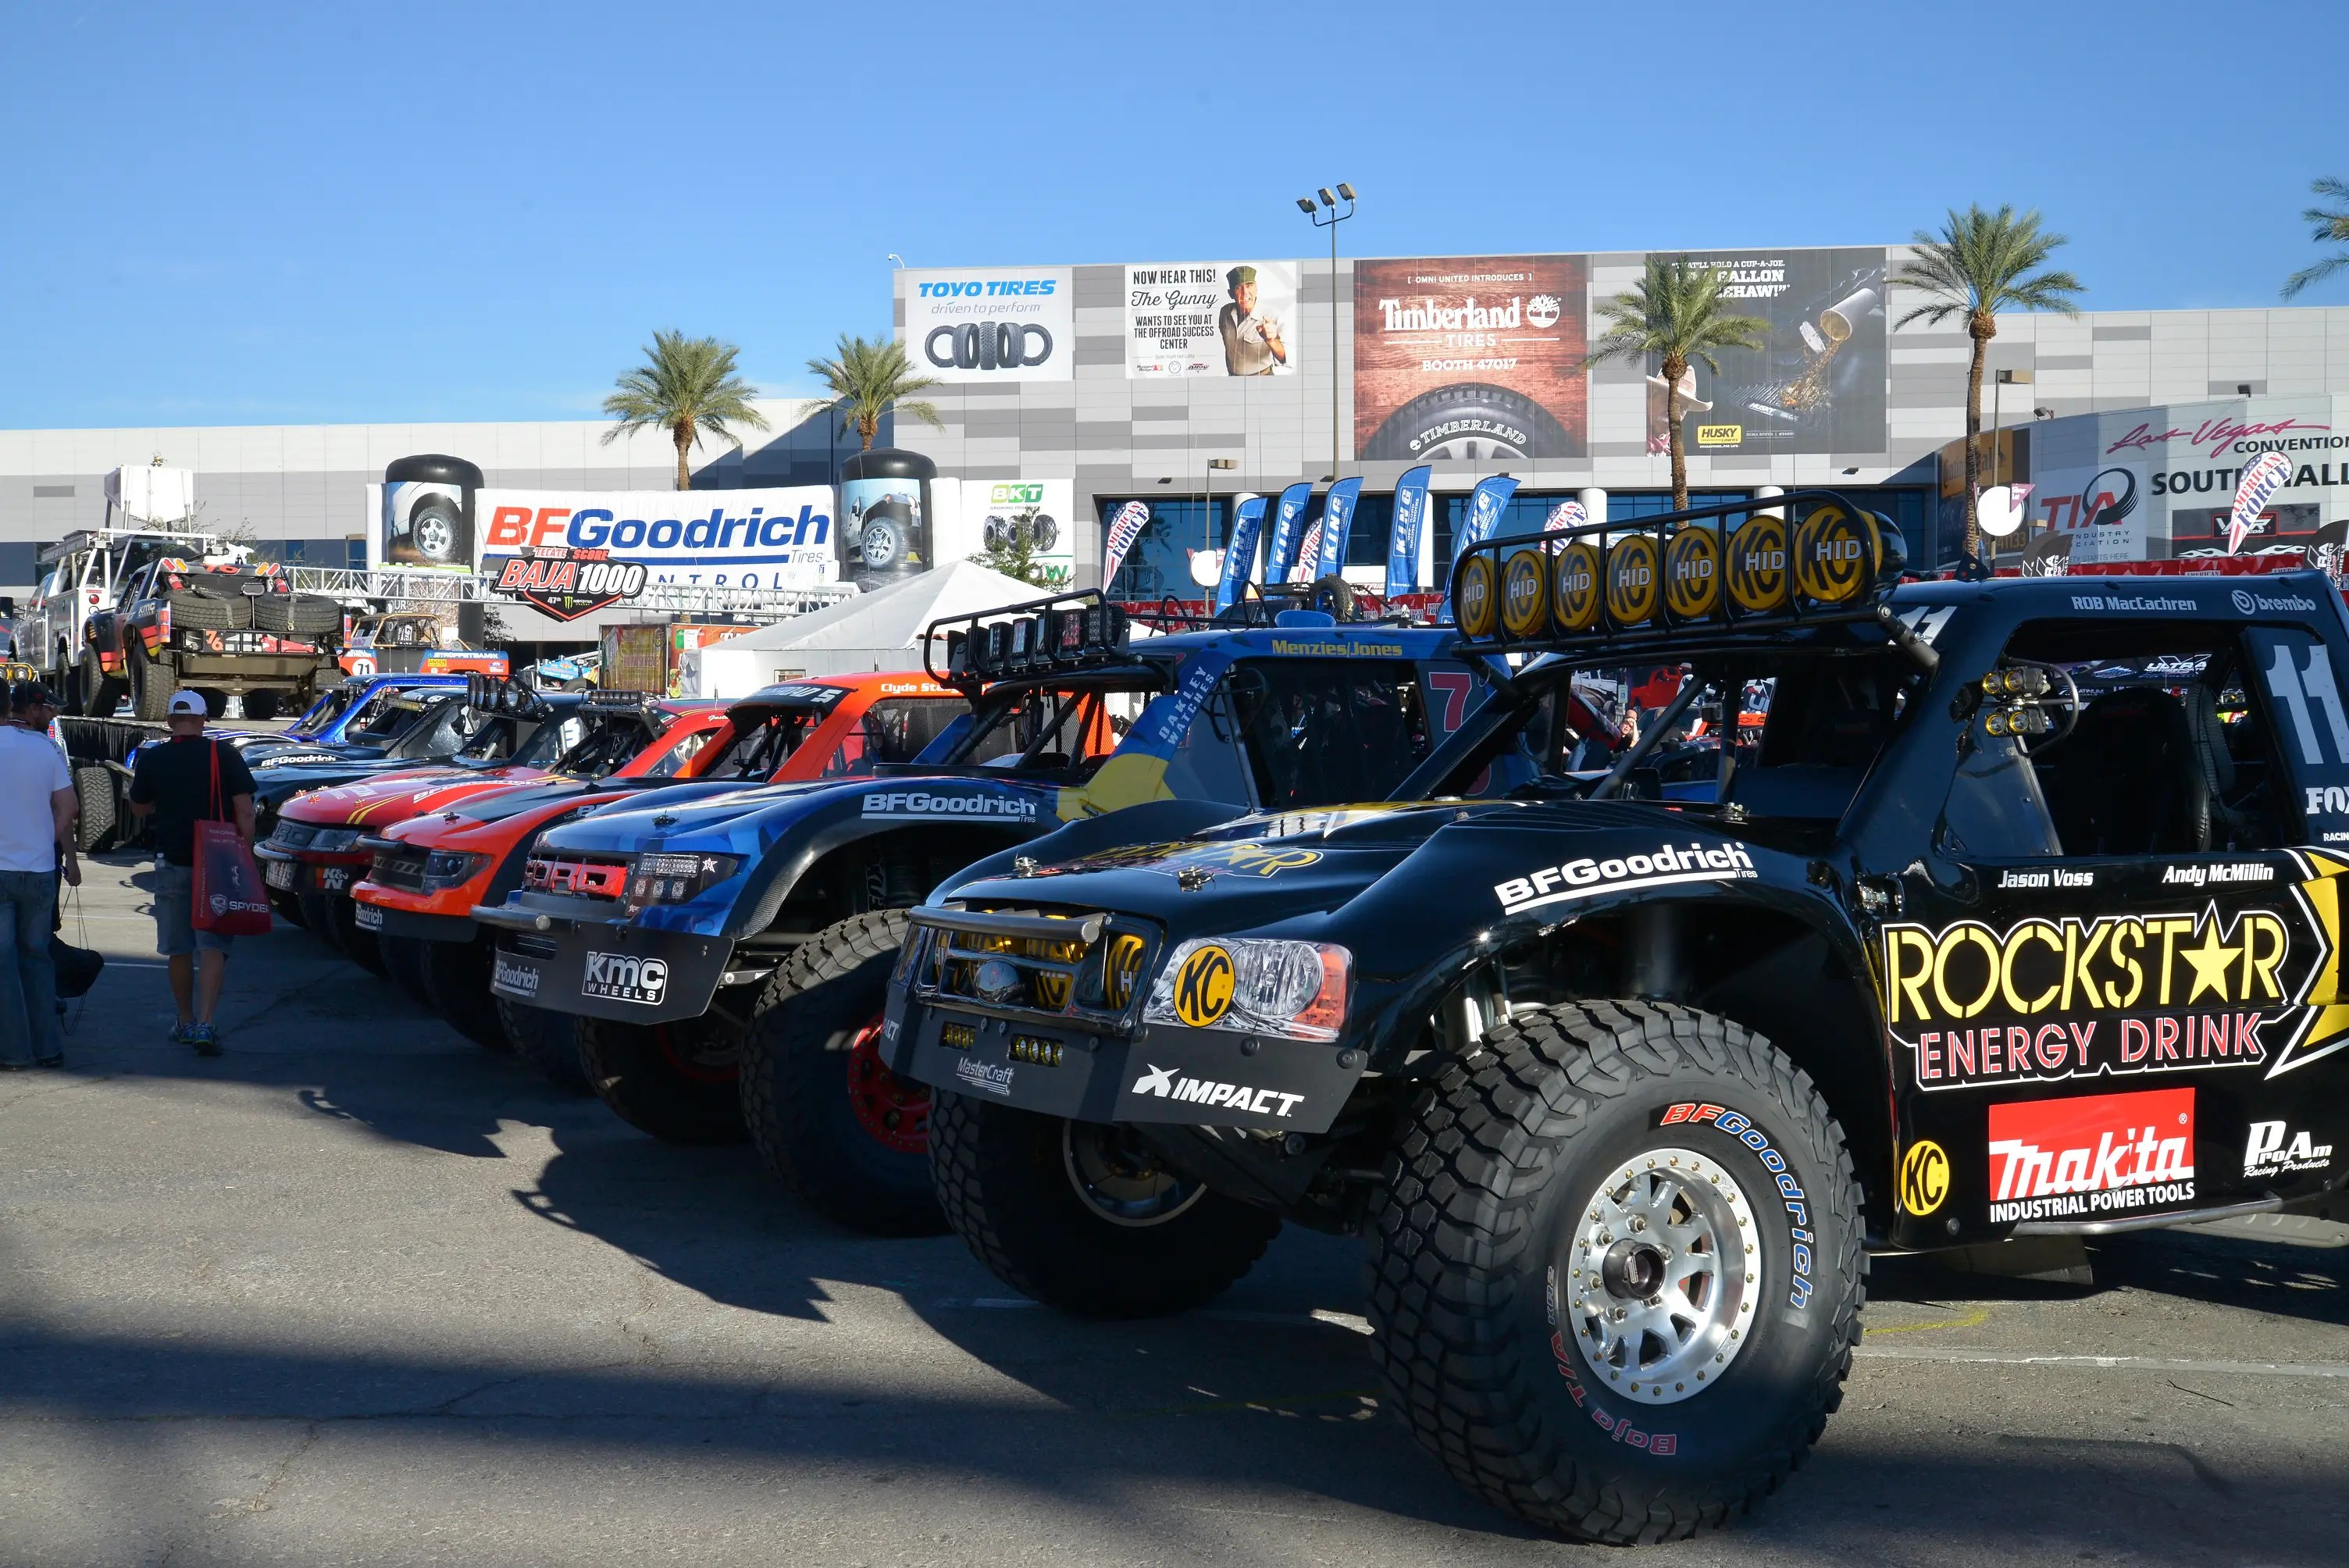 ... as are these trophy trucks that will compete in the Baja 1000 race in Mexico.